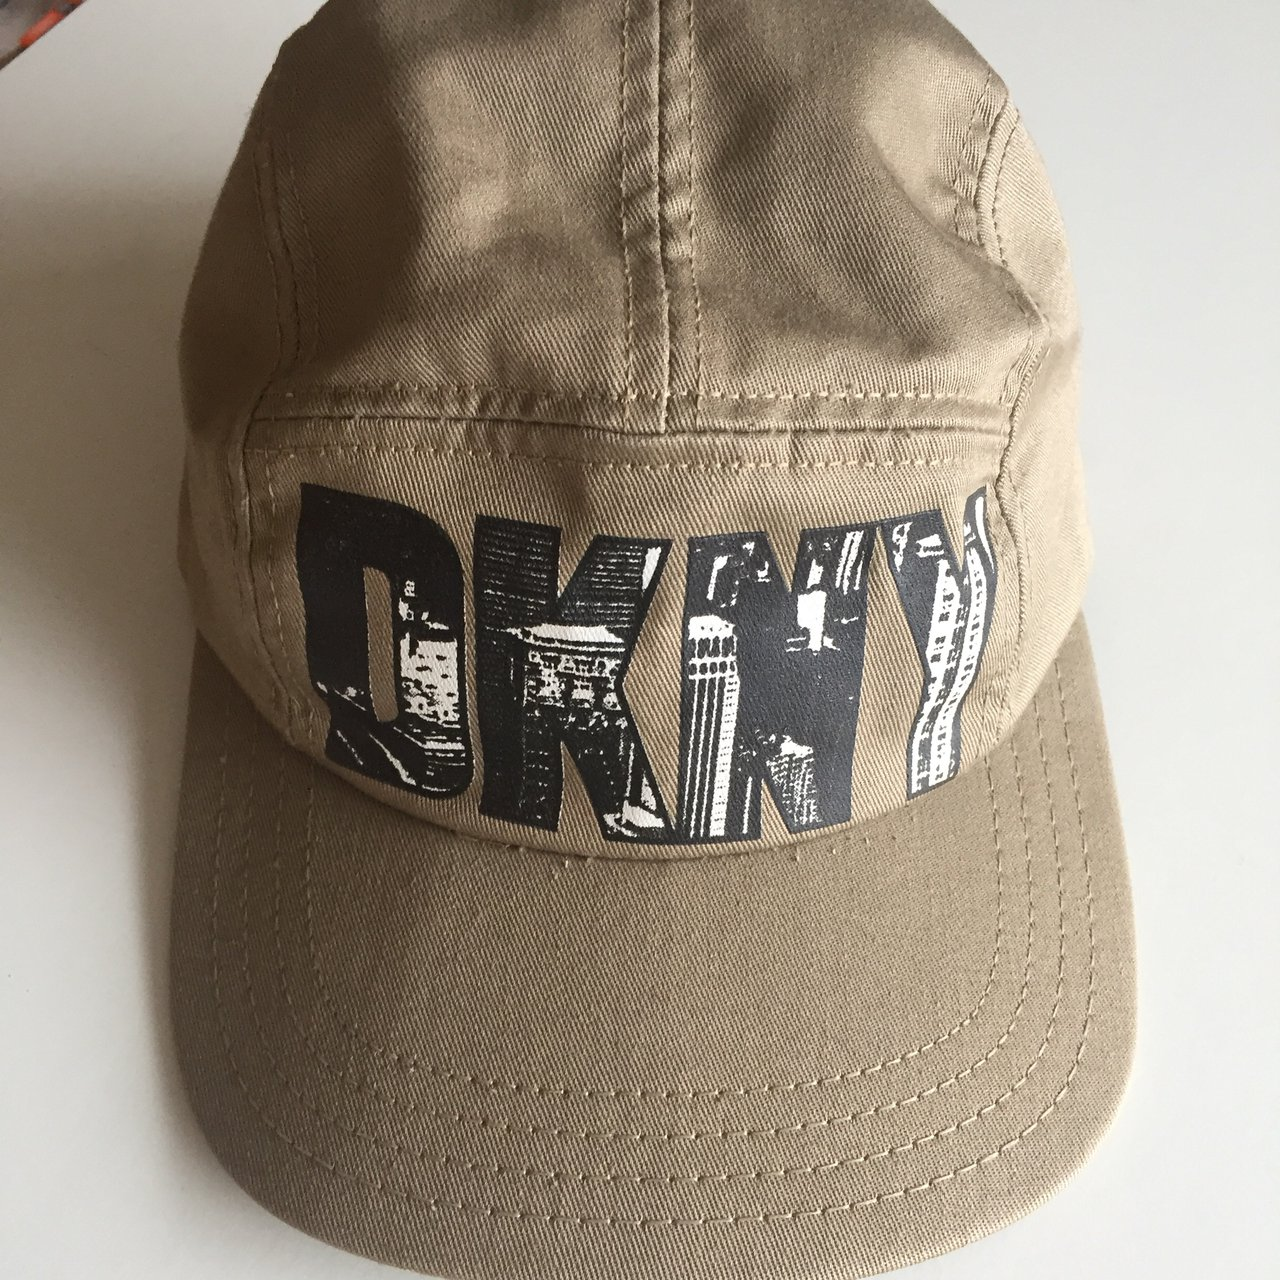 Womens Vintage DKNY 5 Panel Hat Cap Made in USA 90s Beige- a - Depop 2f636f774dd2